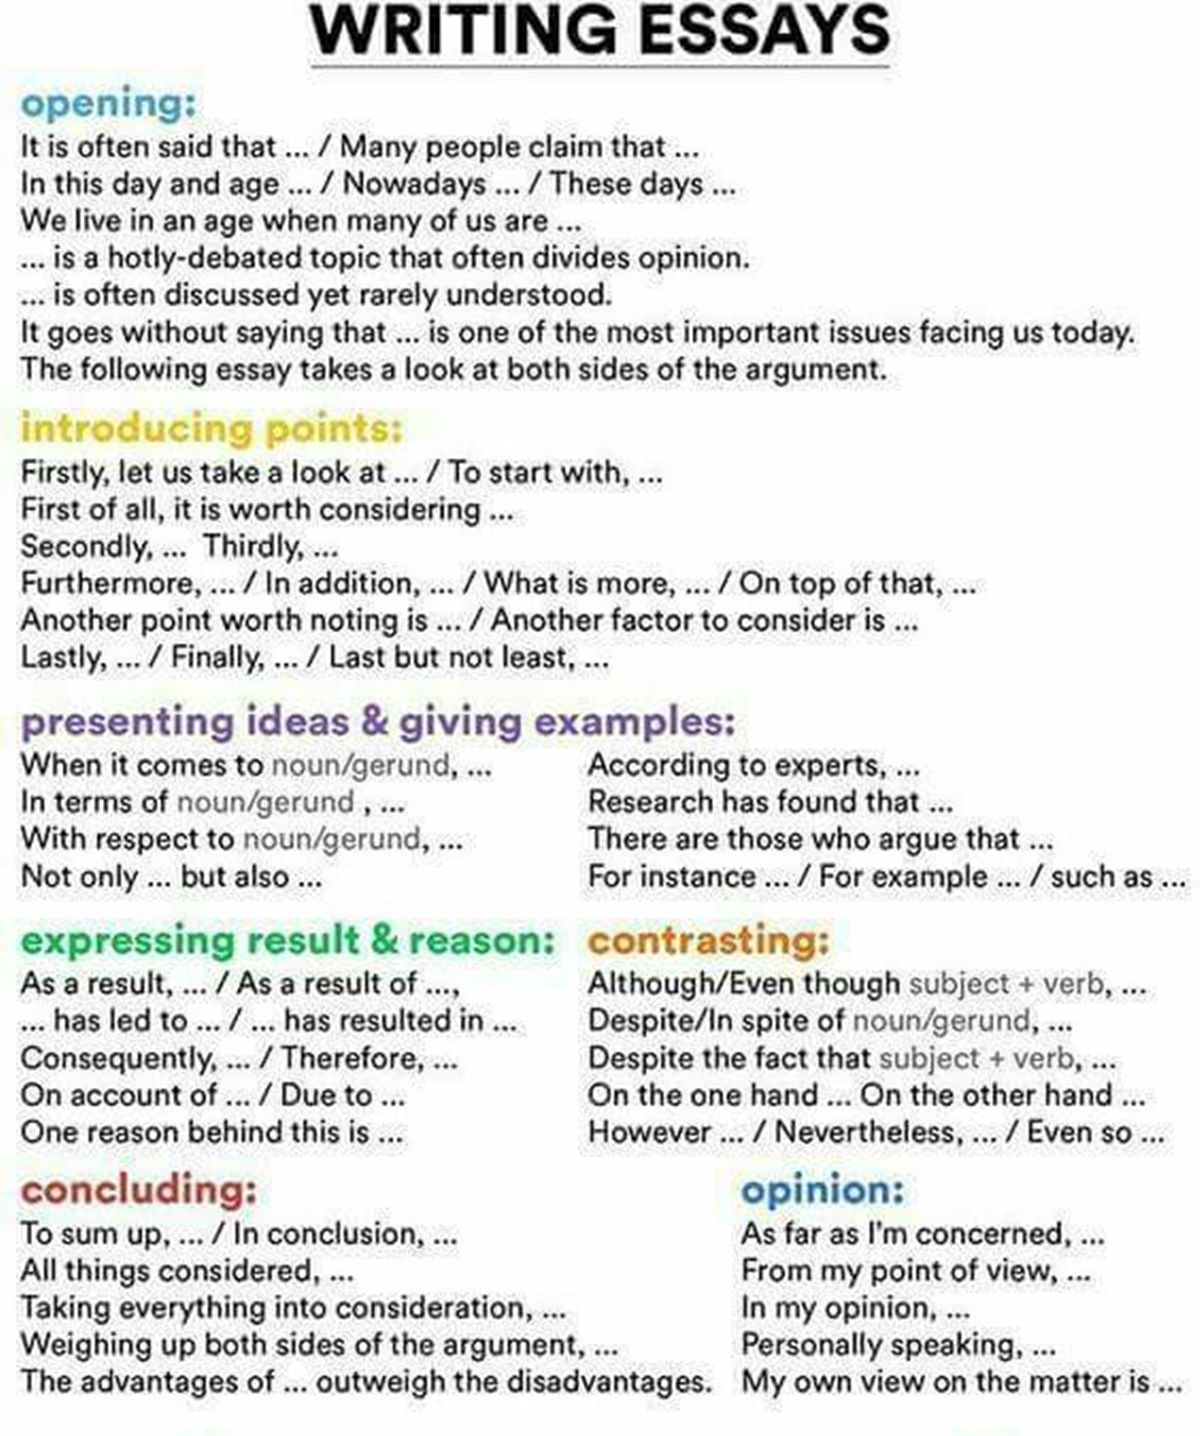 pin by chell rodica on learn english  essay writing skills english  pin by chell rodica on learn english  essay writing skills english  writing ielts writing